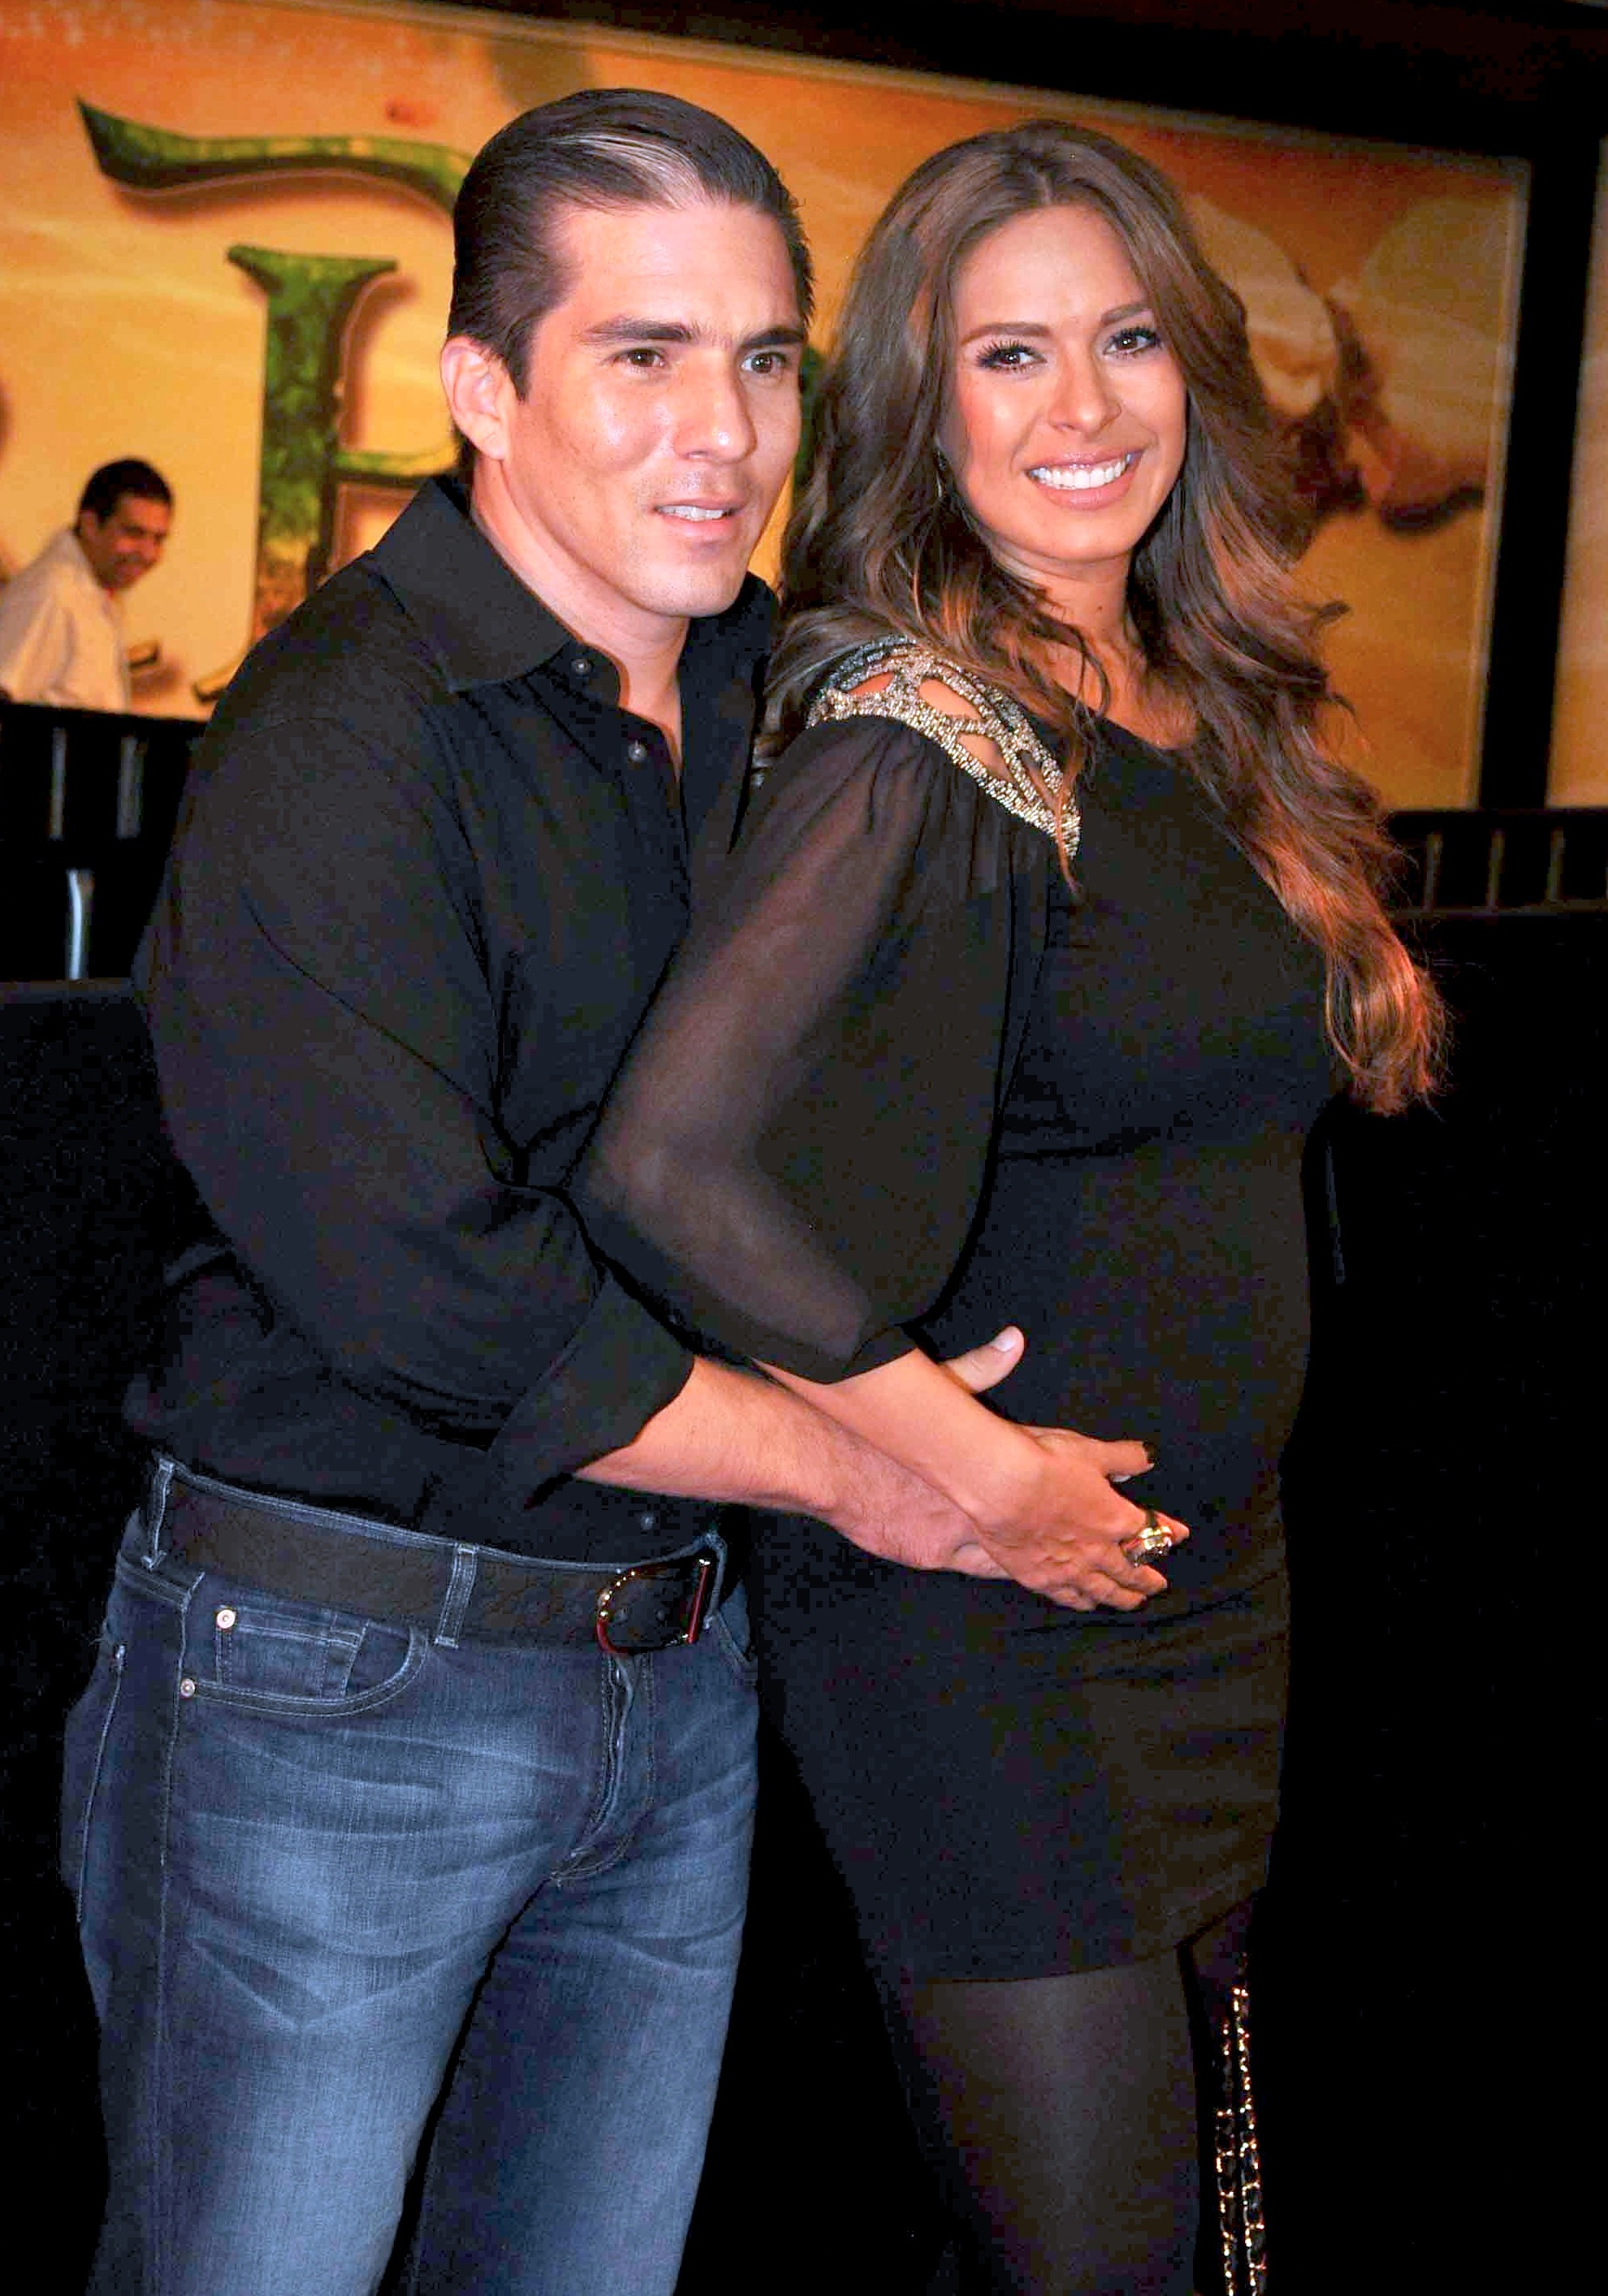 Fernando Reina and Galilea Montijo